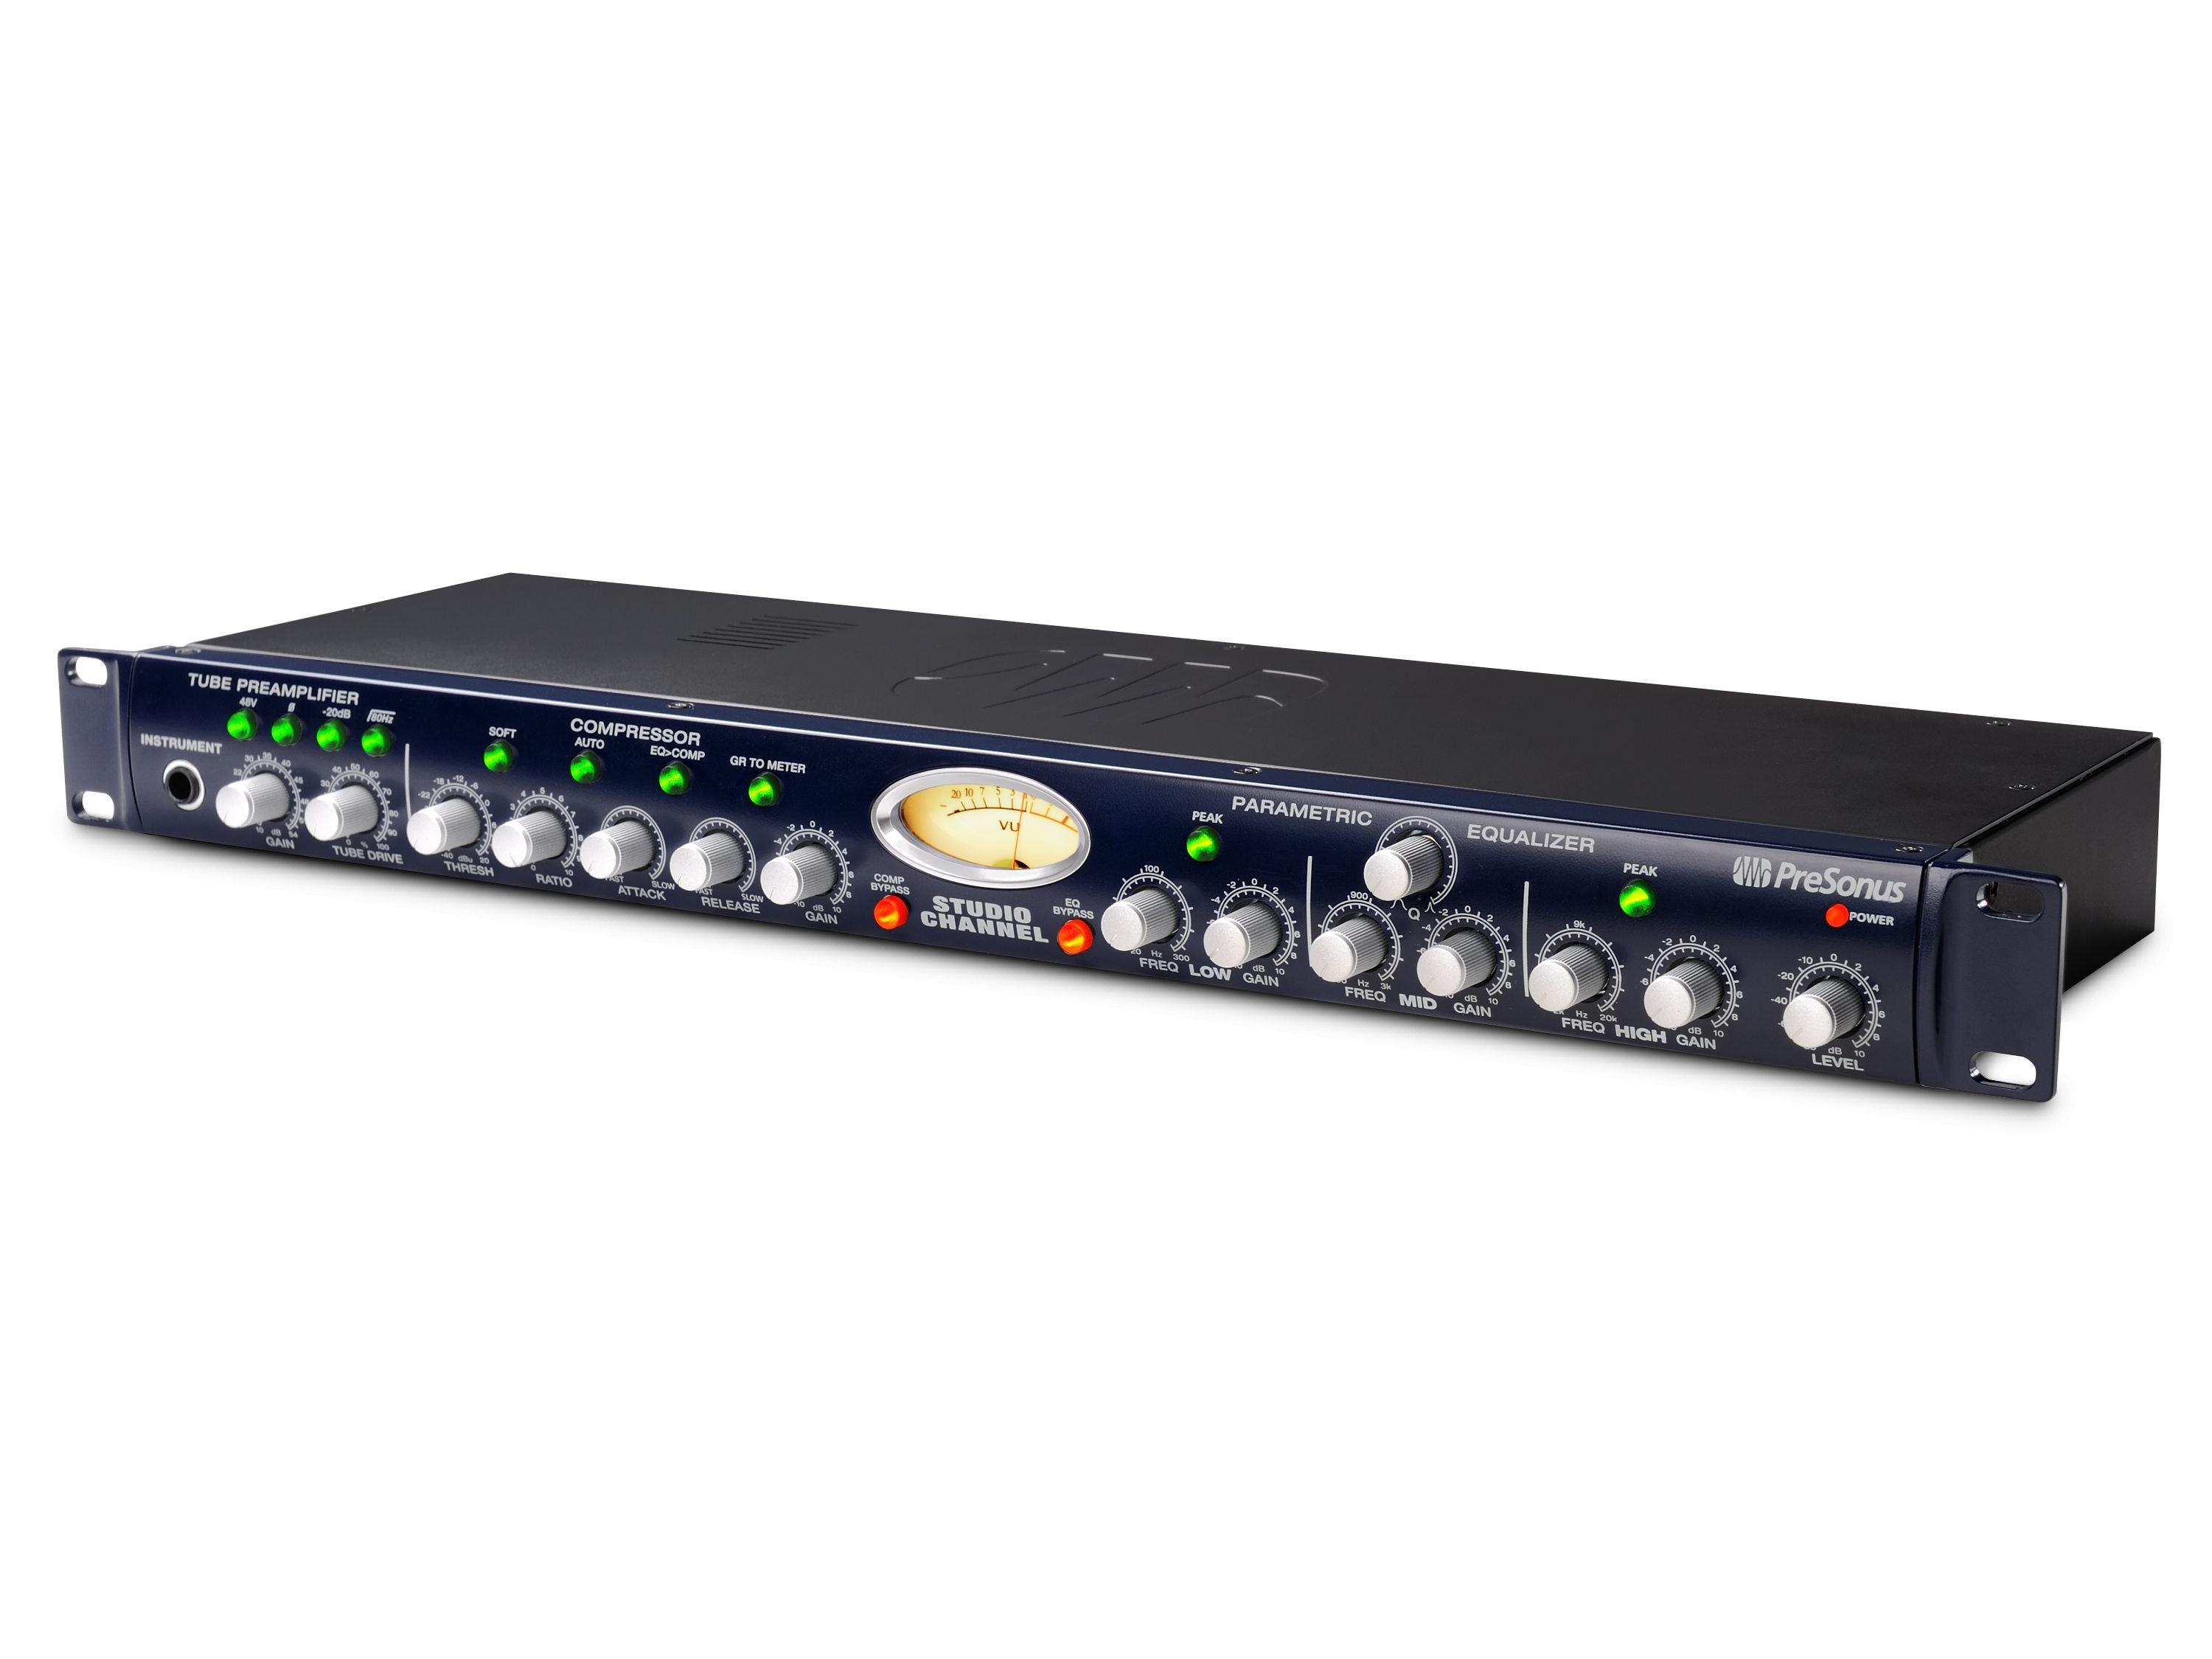 Details about PreSonus Studio Channel Single Channel Tube Strip - Mic  Preamp/Comp/EQ